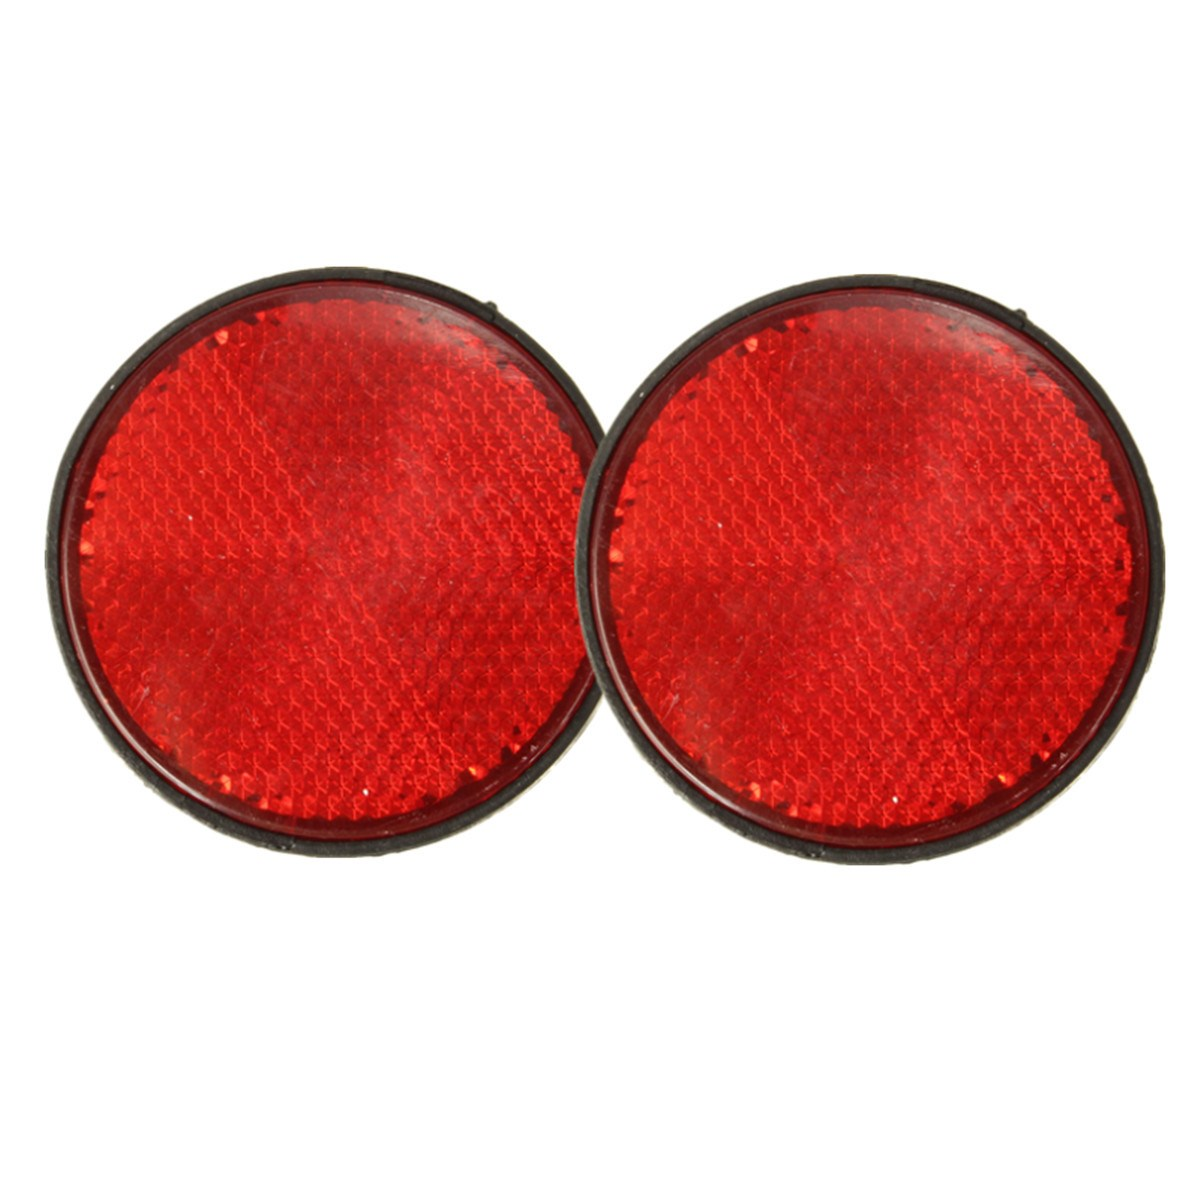 2 x 2 Universal Round Red Reflectors For Motorcycles ATV Bikes Dirt Bikes